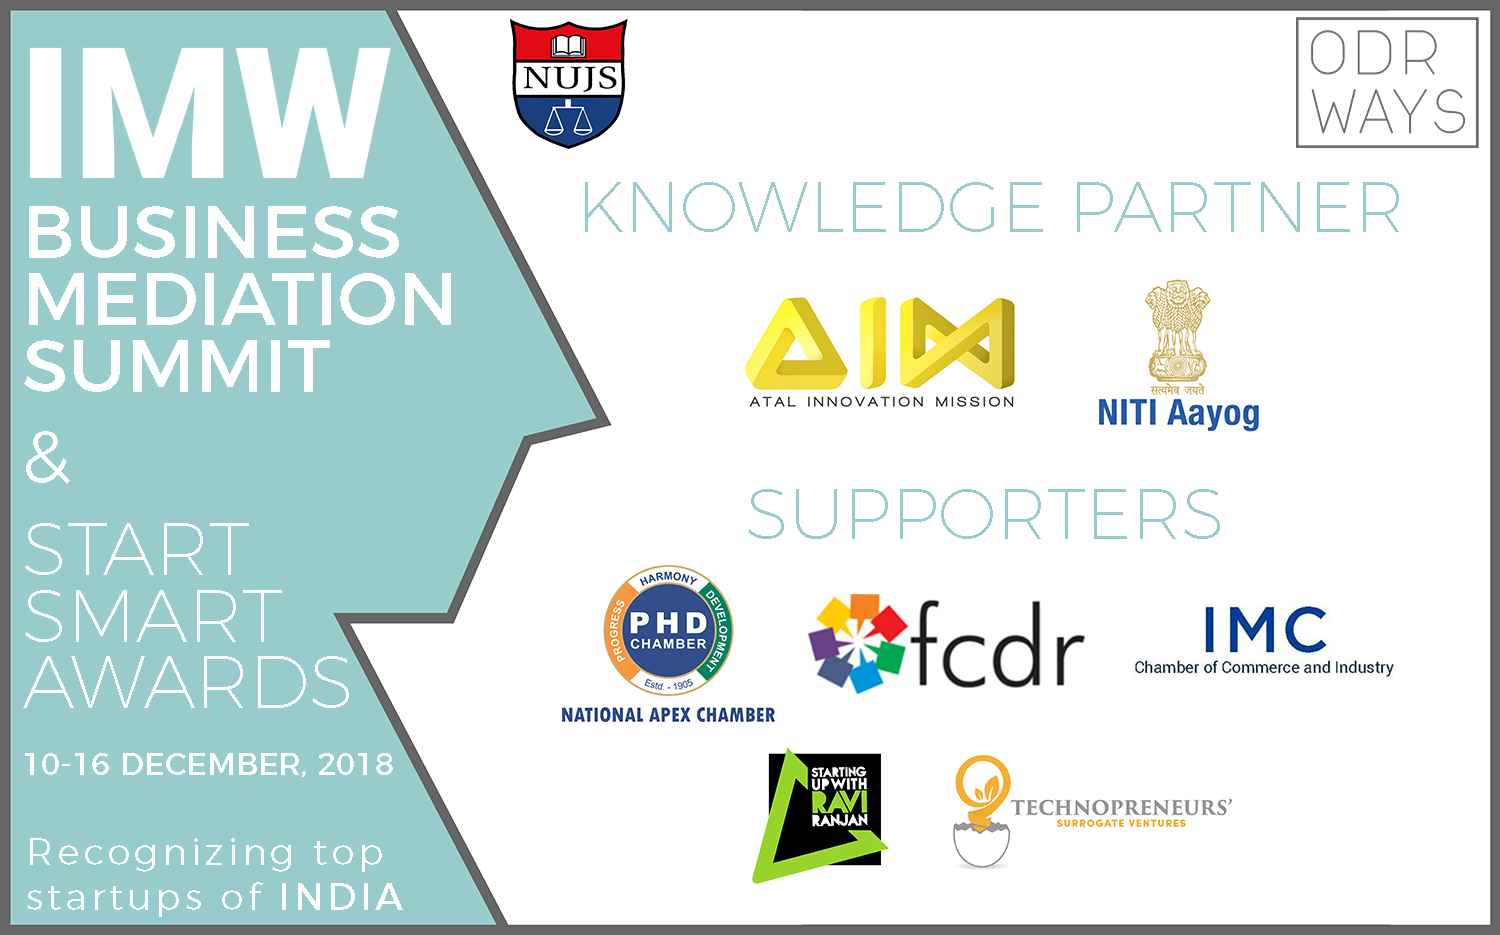 India Mediation Week NUJS Kolkata Niti Aayog